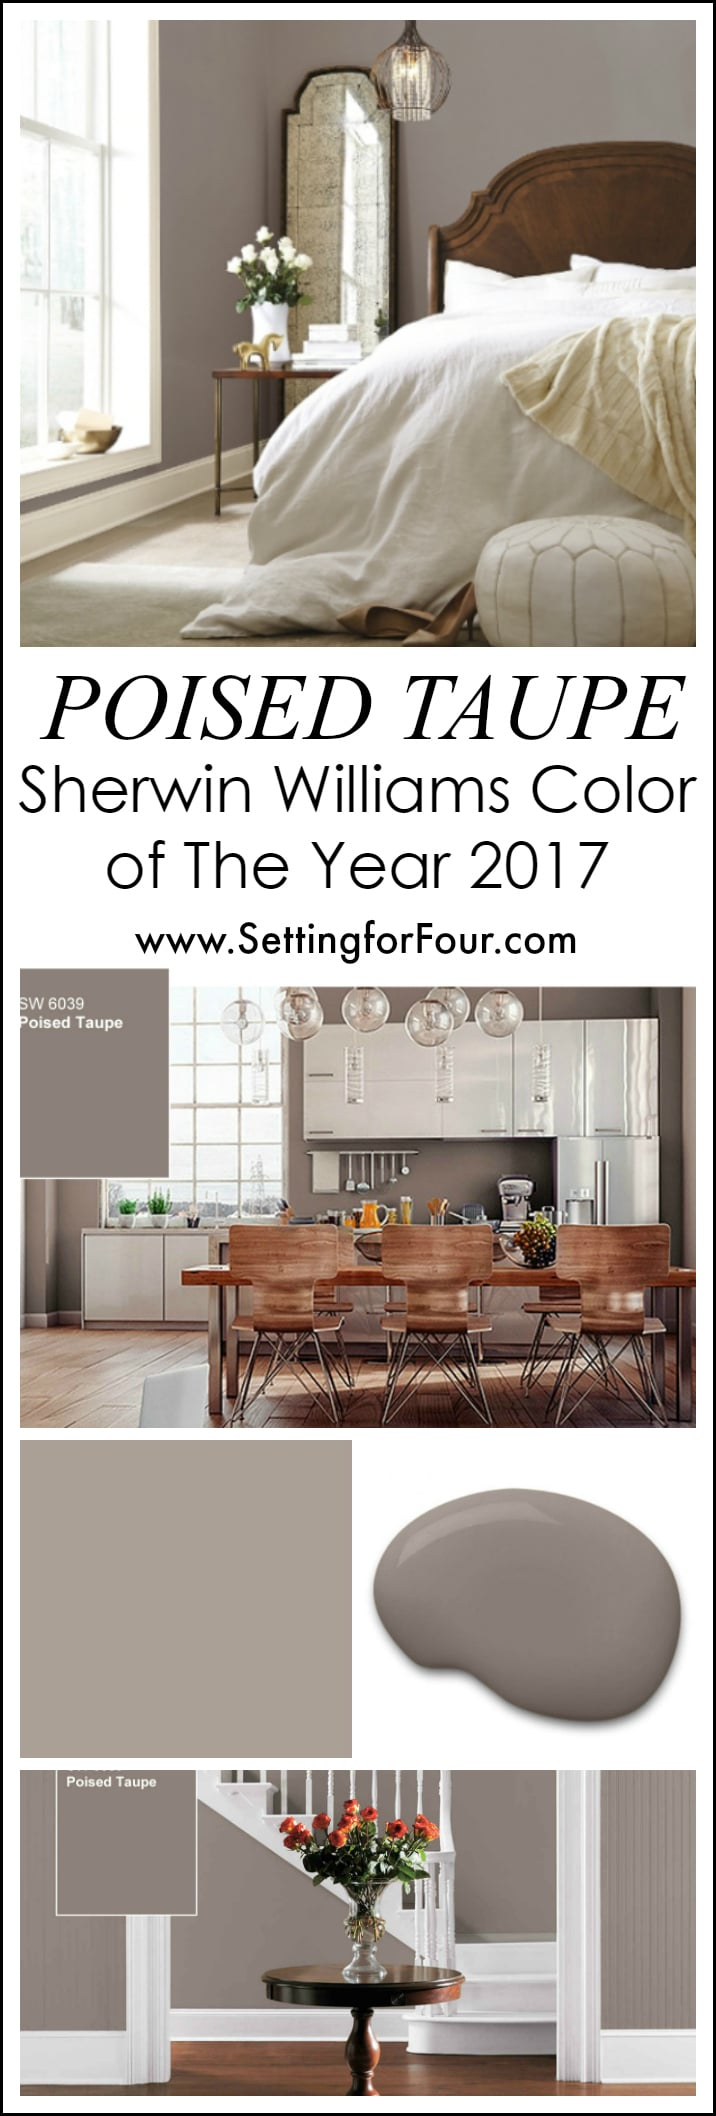 sherwin williams poised taupe color of the year 2017 setting for four. Black Bedroom Furniture Sets. Home Design Ideas